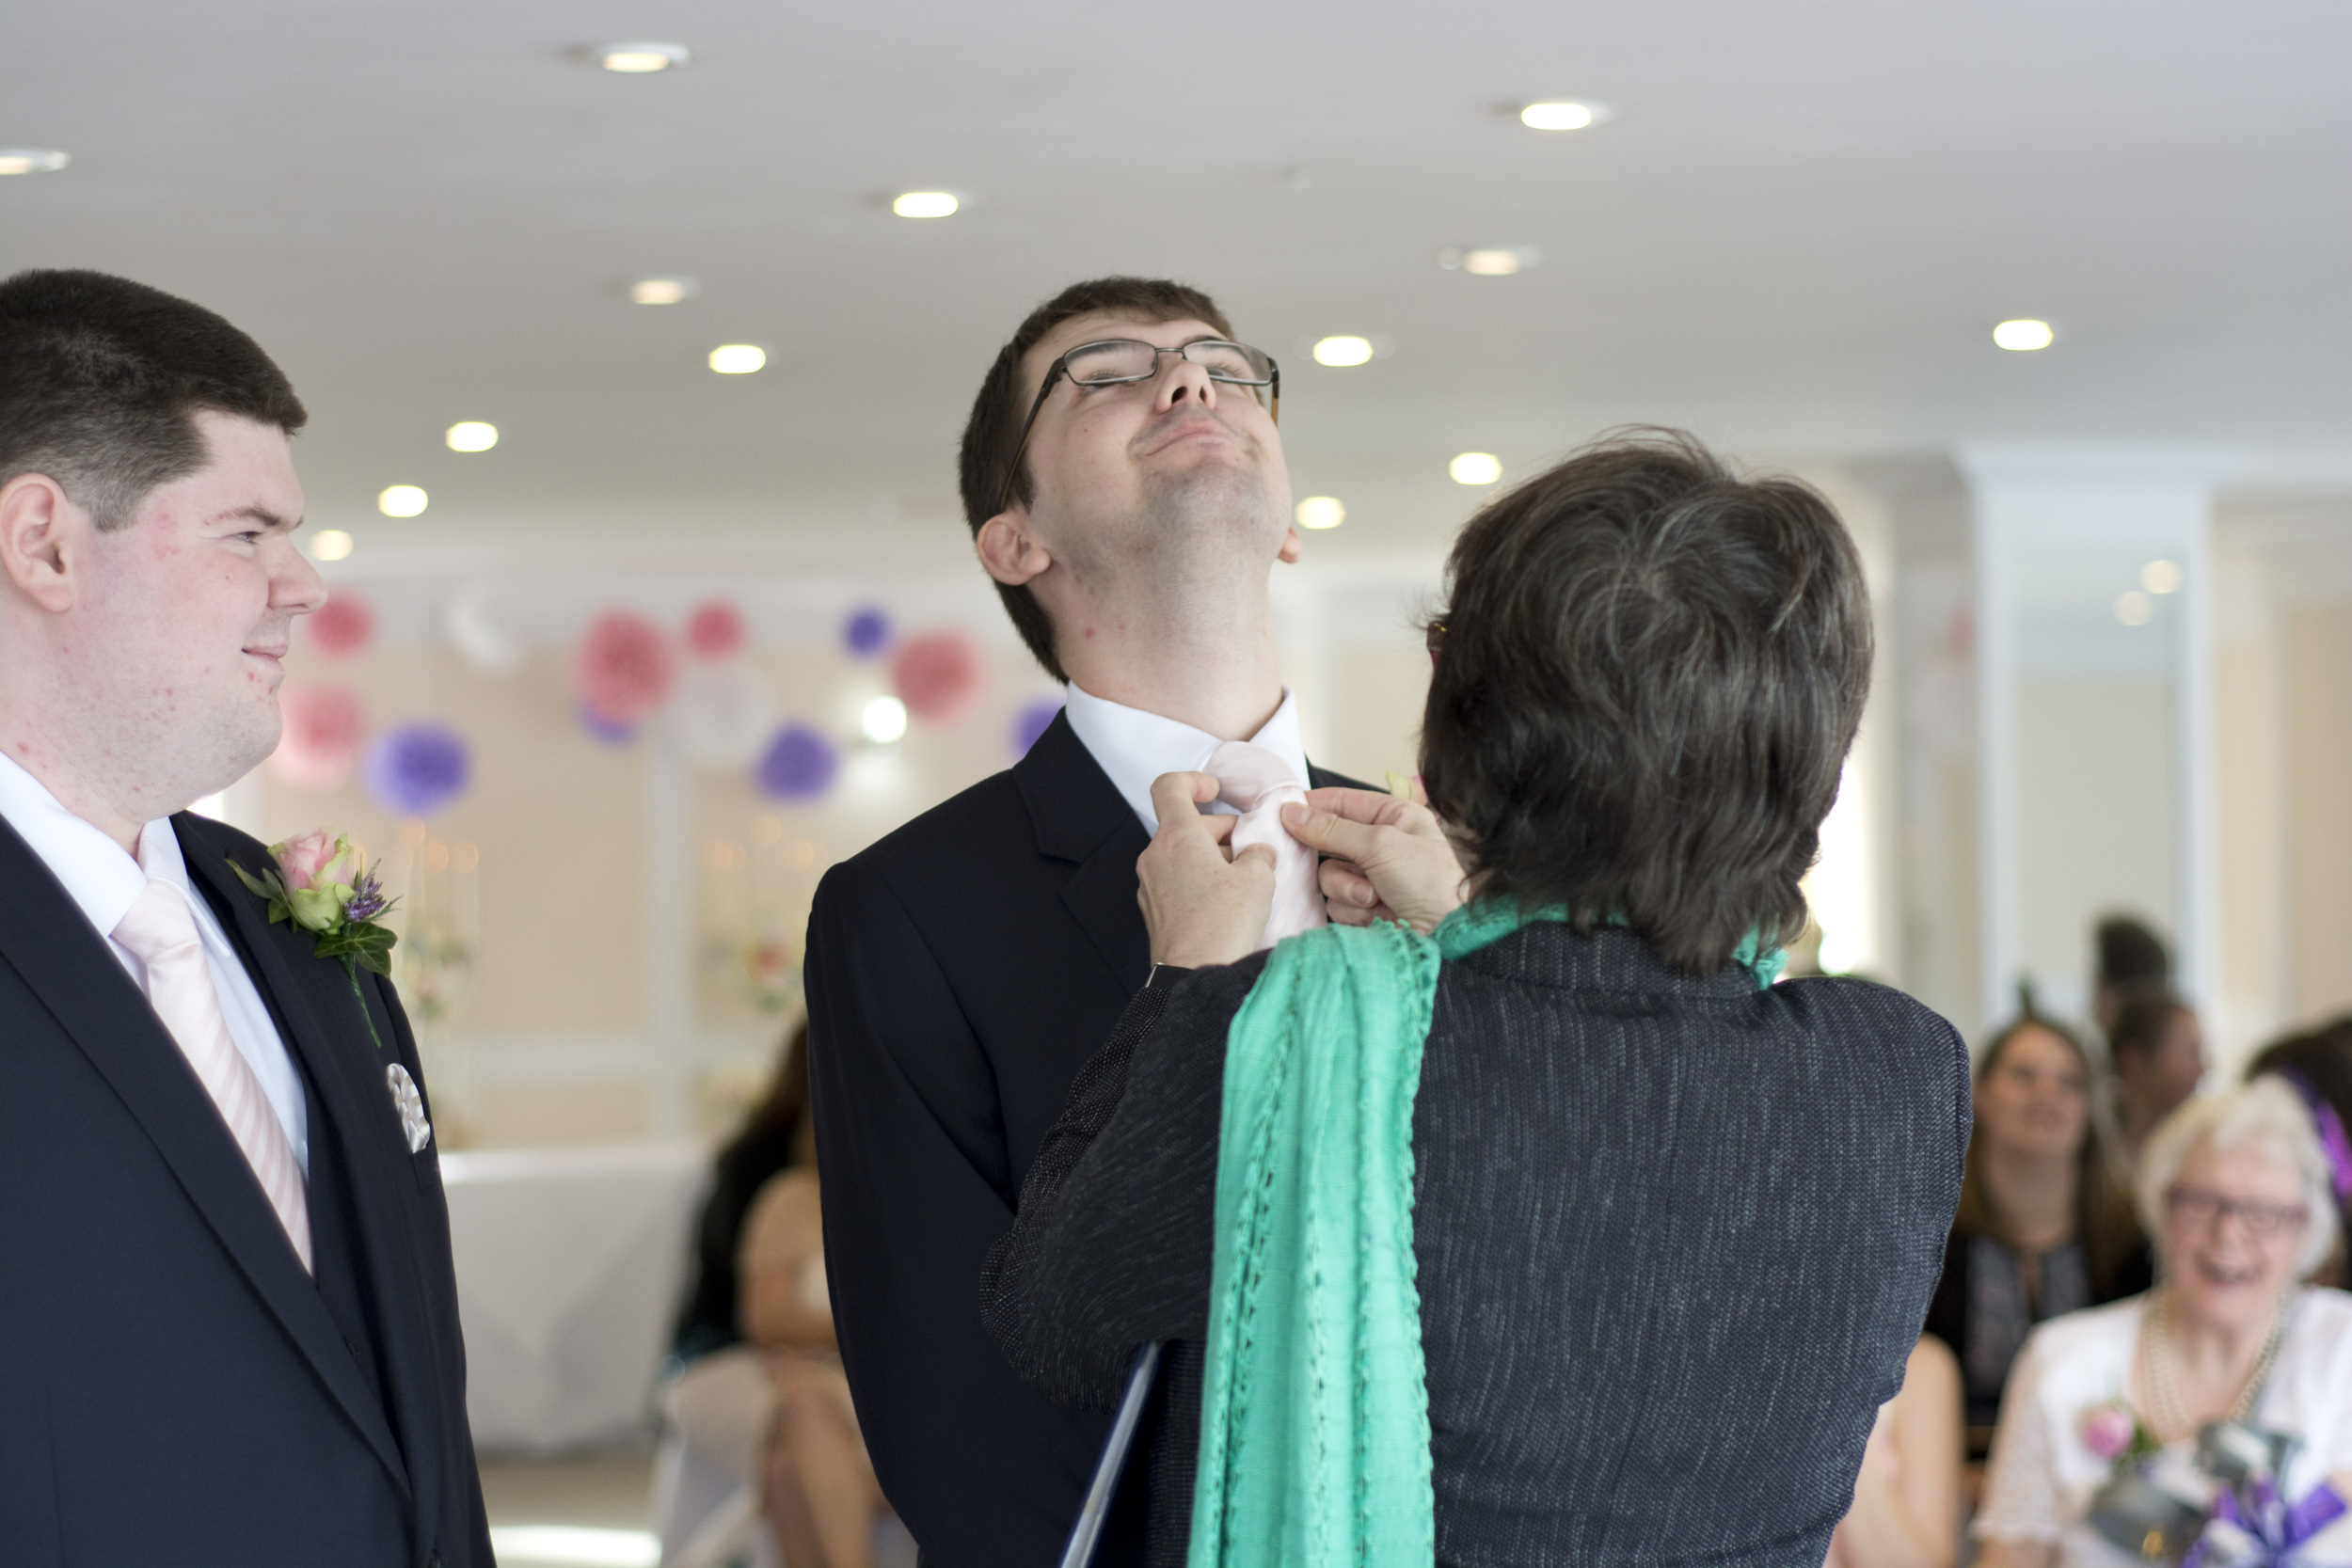 The wedding celebrant adjusts the grooms tie at The GreenBank Hotel Falmouth